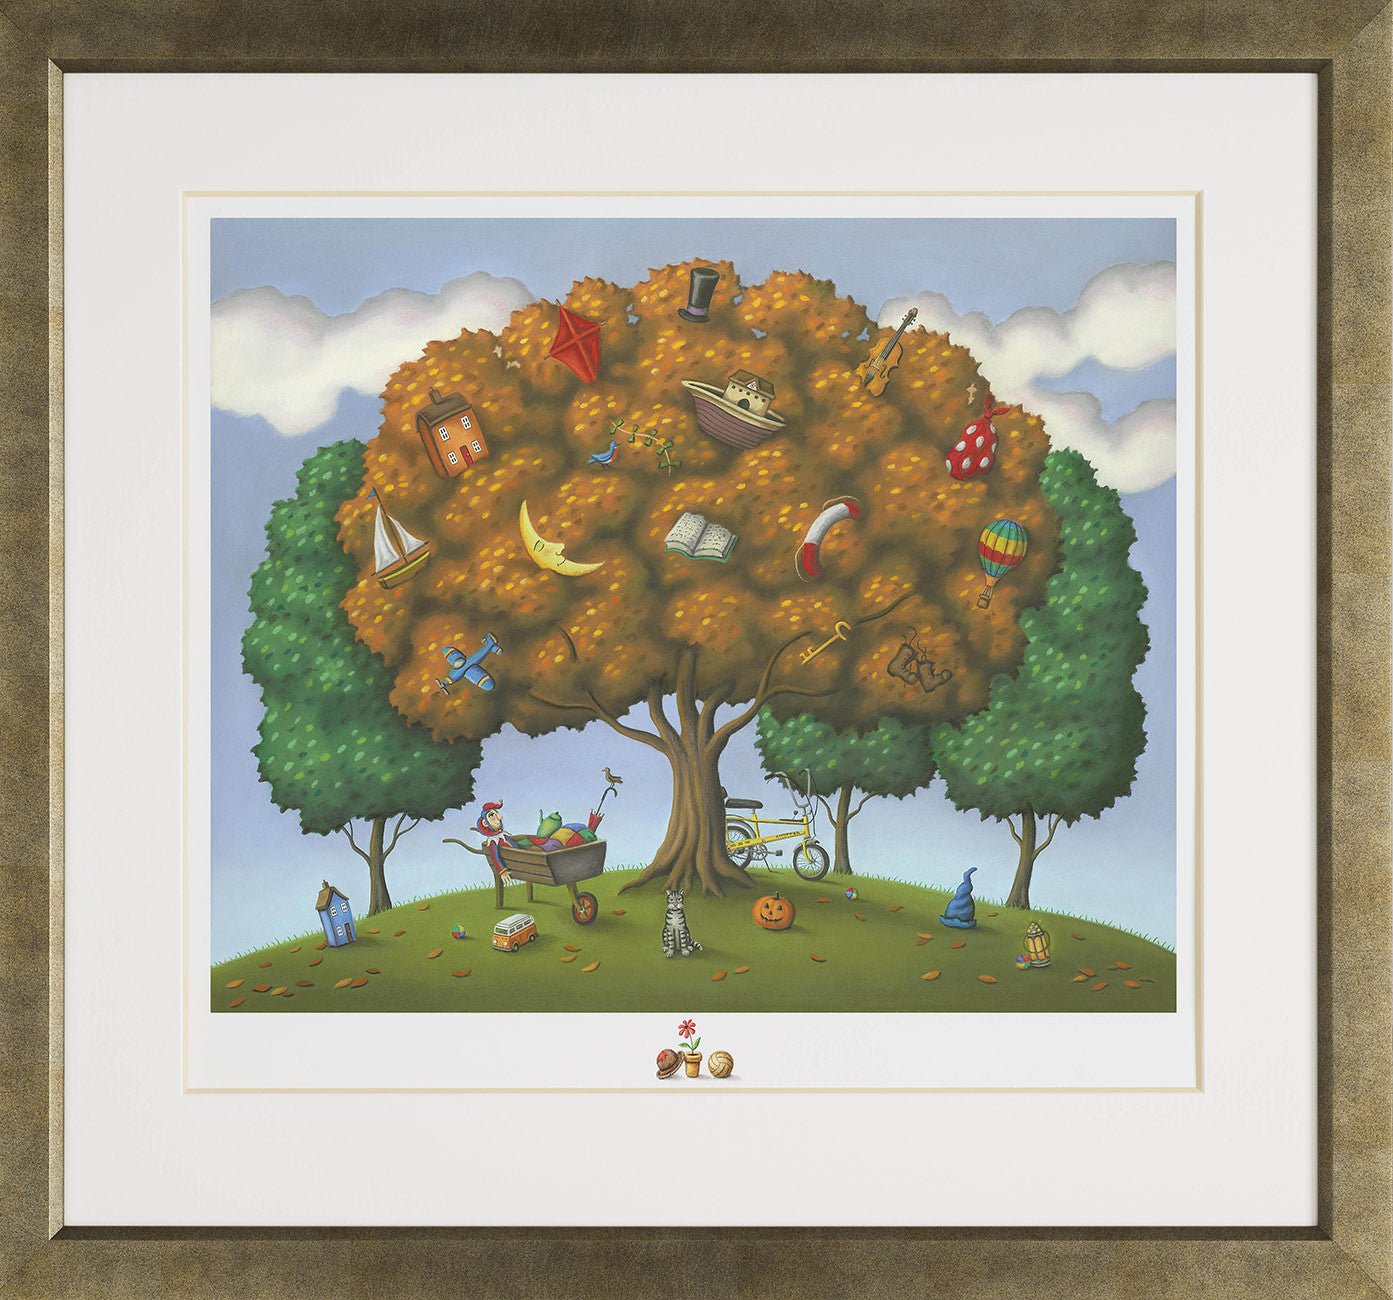 The Golden Tree - Remarque Edition - 2015 - Paul Horton - Antidote Art